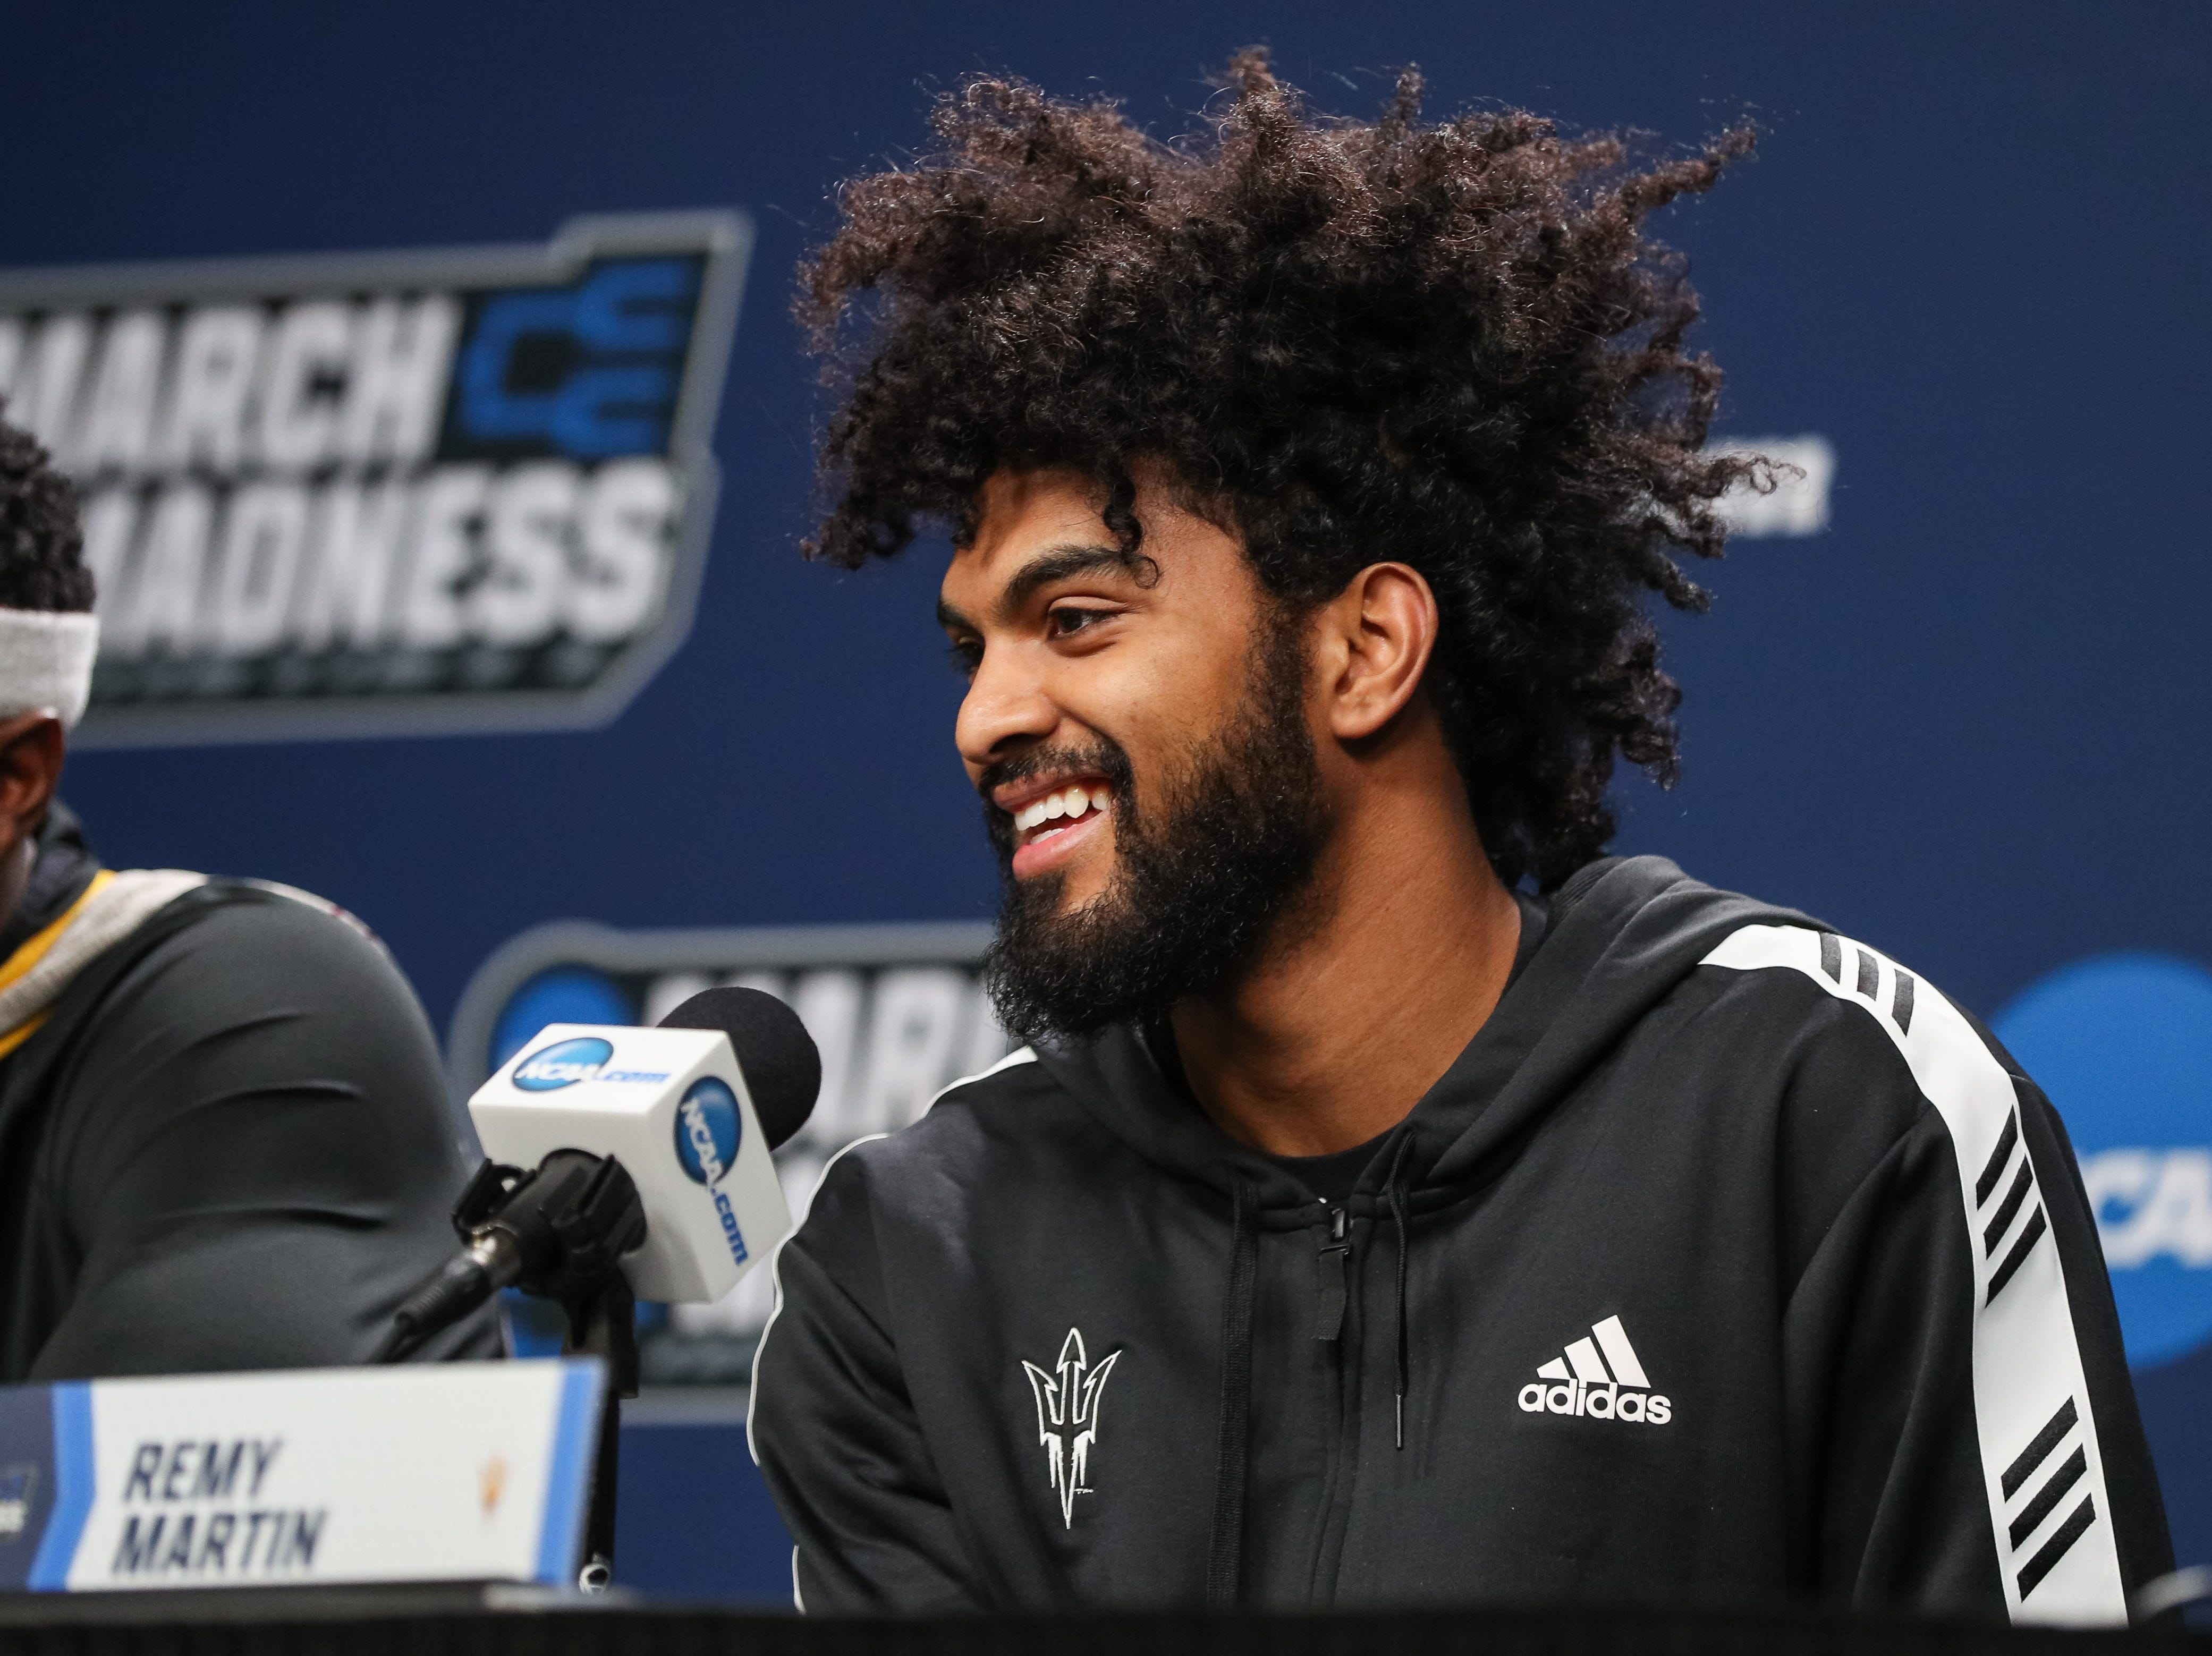 Mar 21, 2019; Tulsa, OK, USA; Arizona State Sun Devils guard Remy Martin answers questions during a press conference before the first round of the 2019 NCAA Tournament at  BOK Center. Mandatory Credit: Brett Rojo-USA TODAY Sports